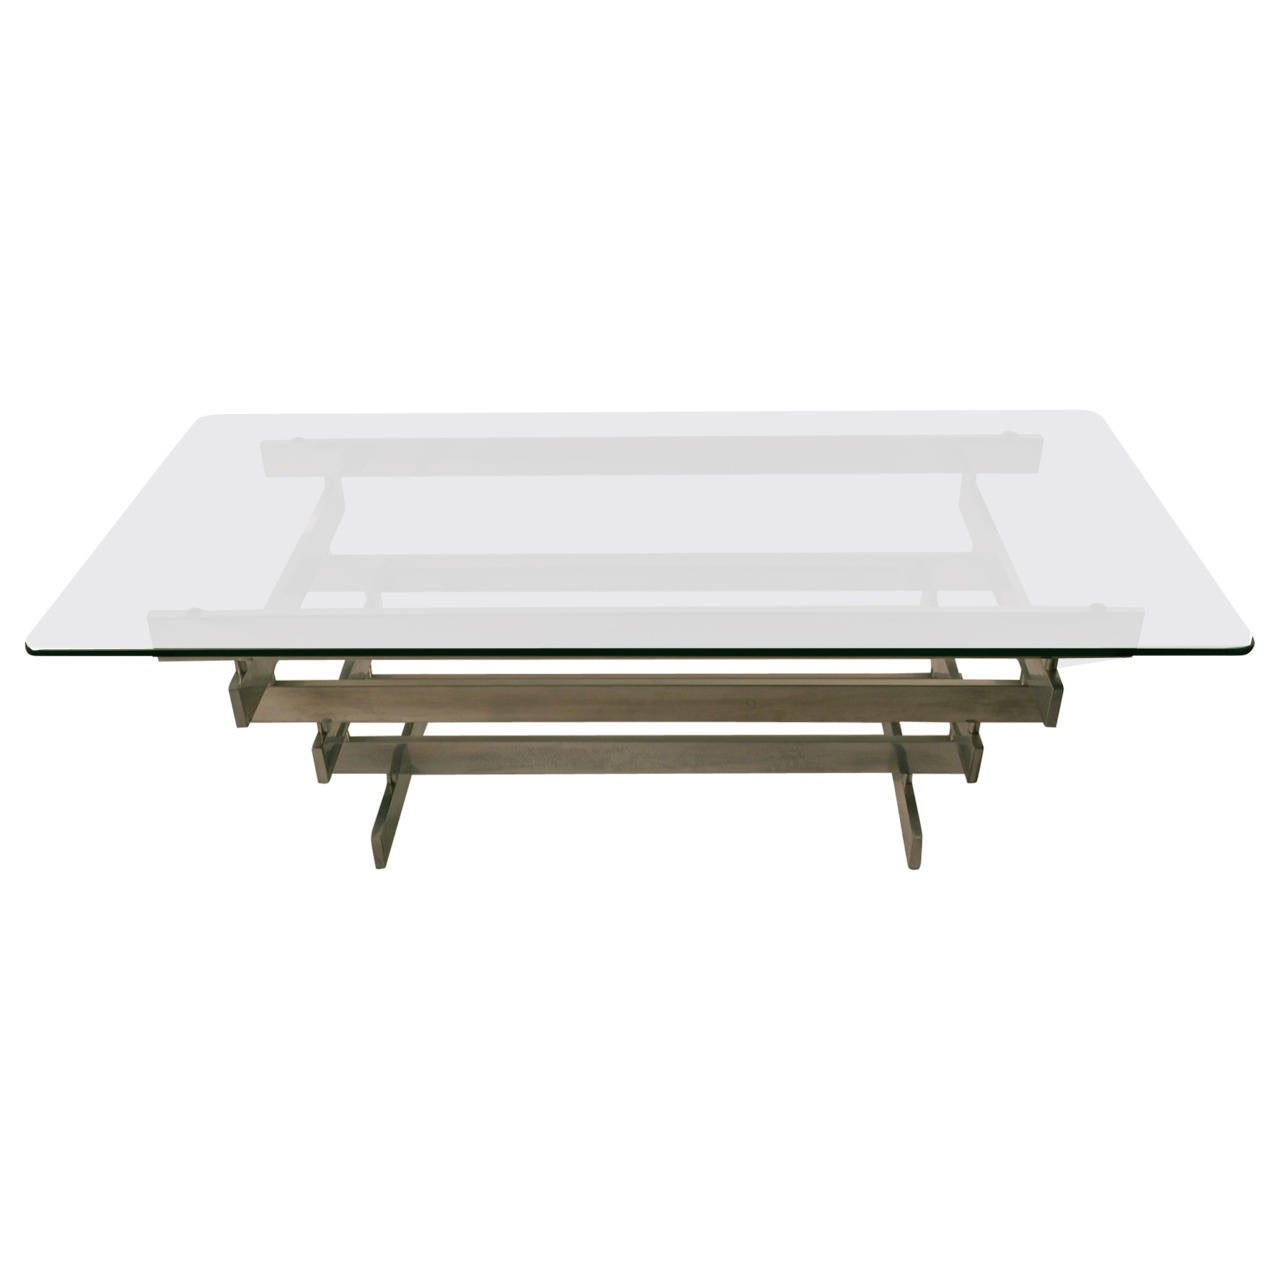 Stacked Aluminum Block Base Glass Top Coffee Table For Sale At 1stdibs